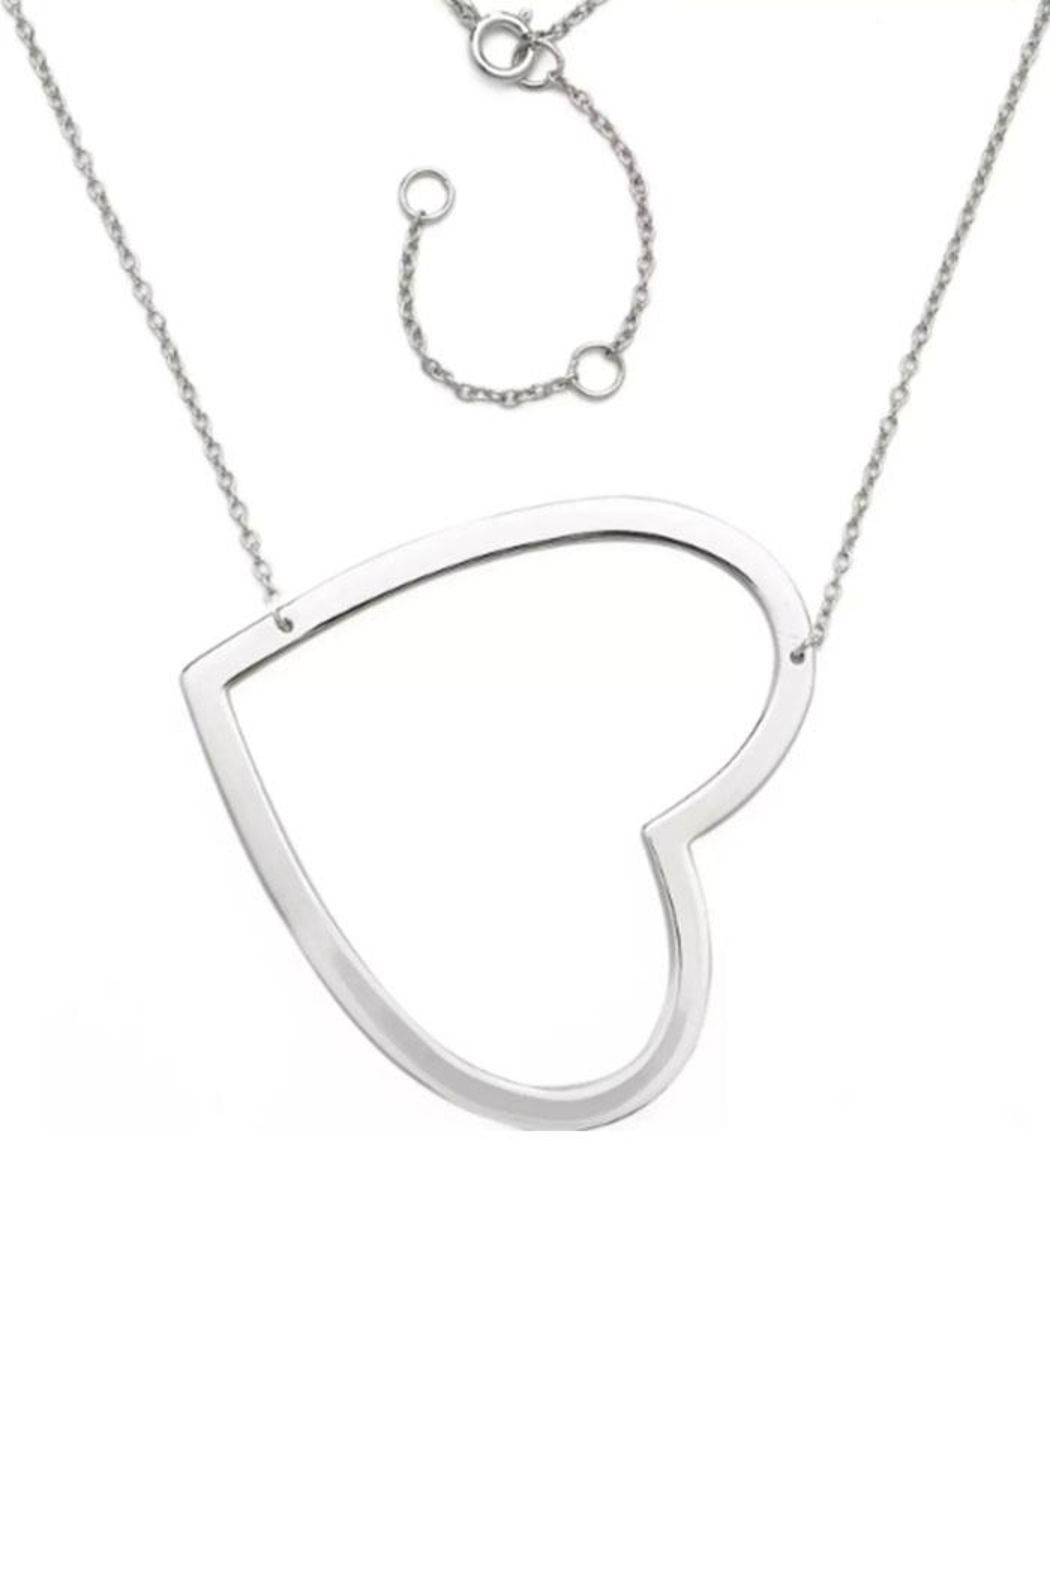 smiley heart w pendant face sterling silver chain sideways eyes necklace